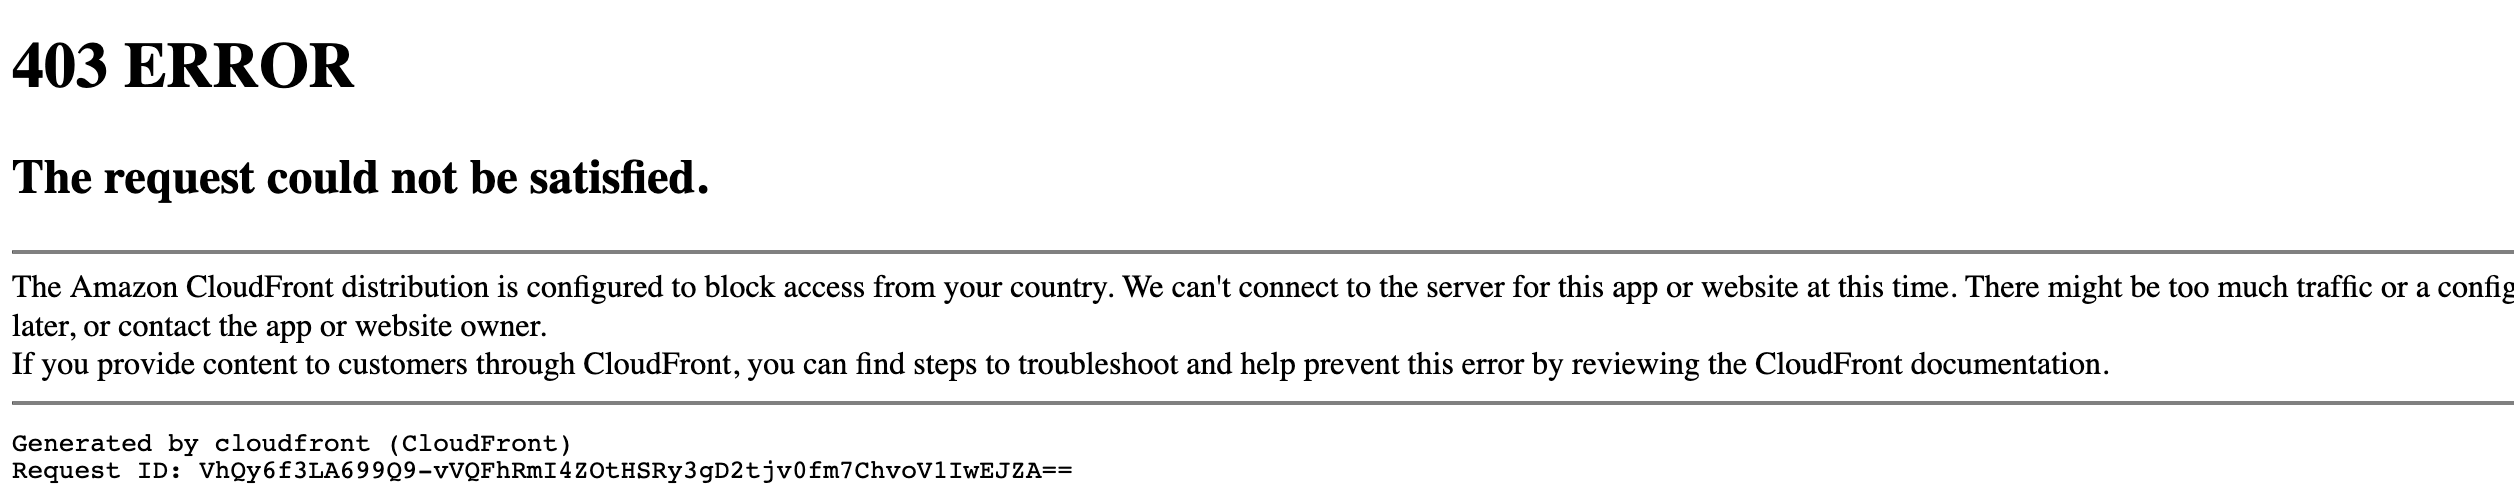 Geoblocking page from Amazon CloudFront<